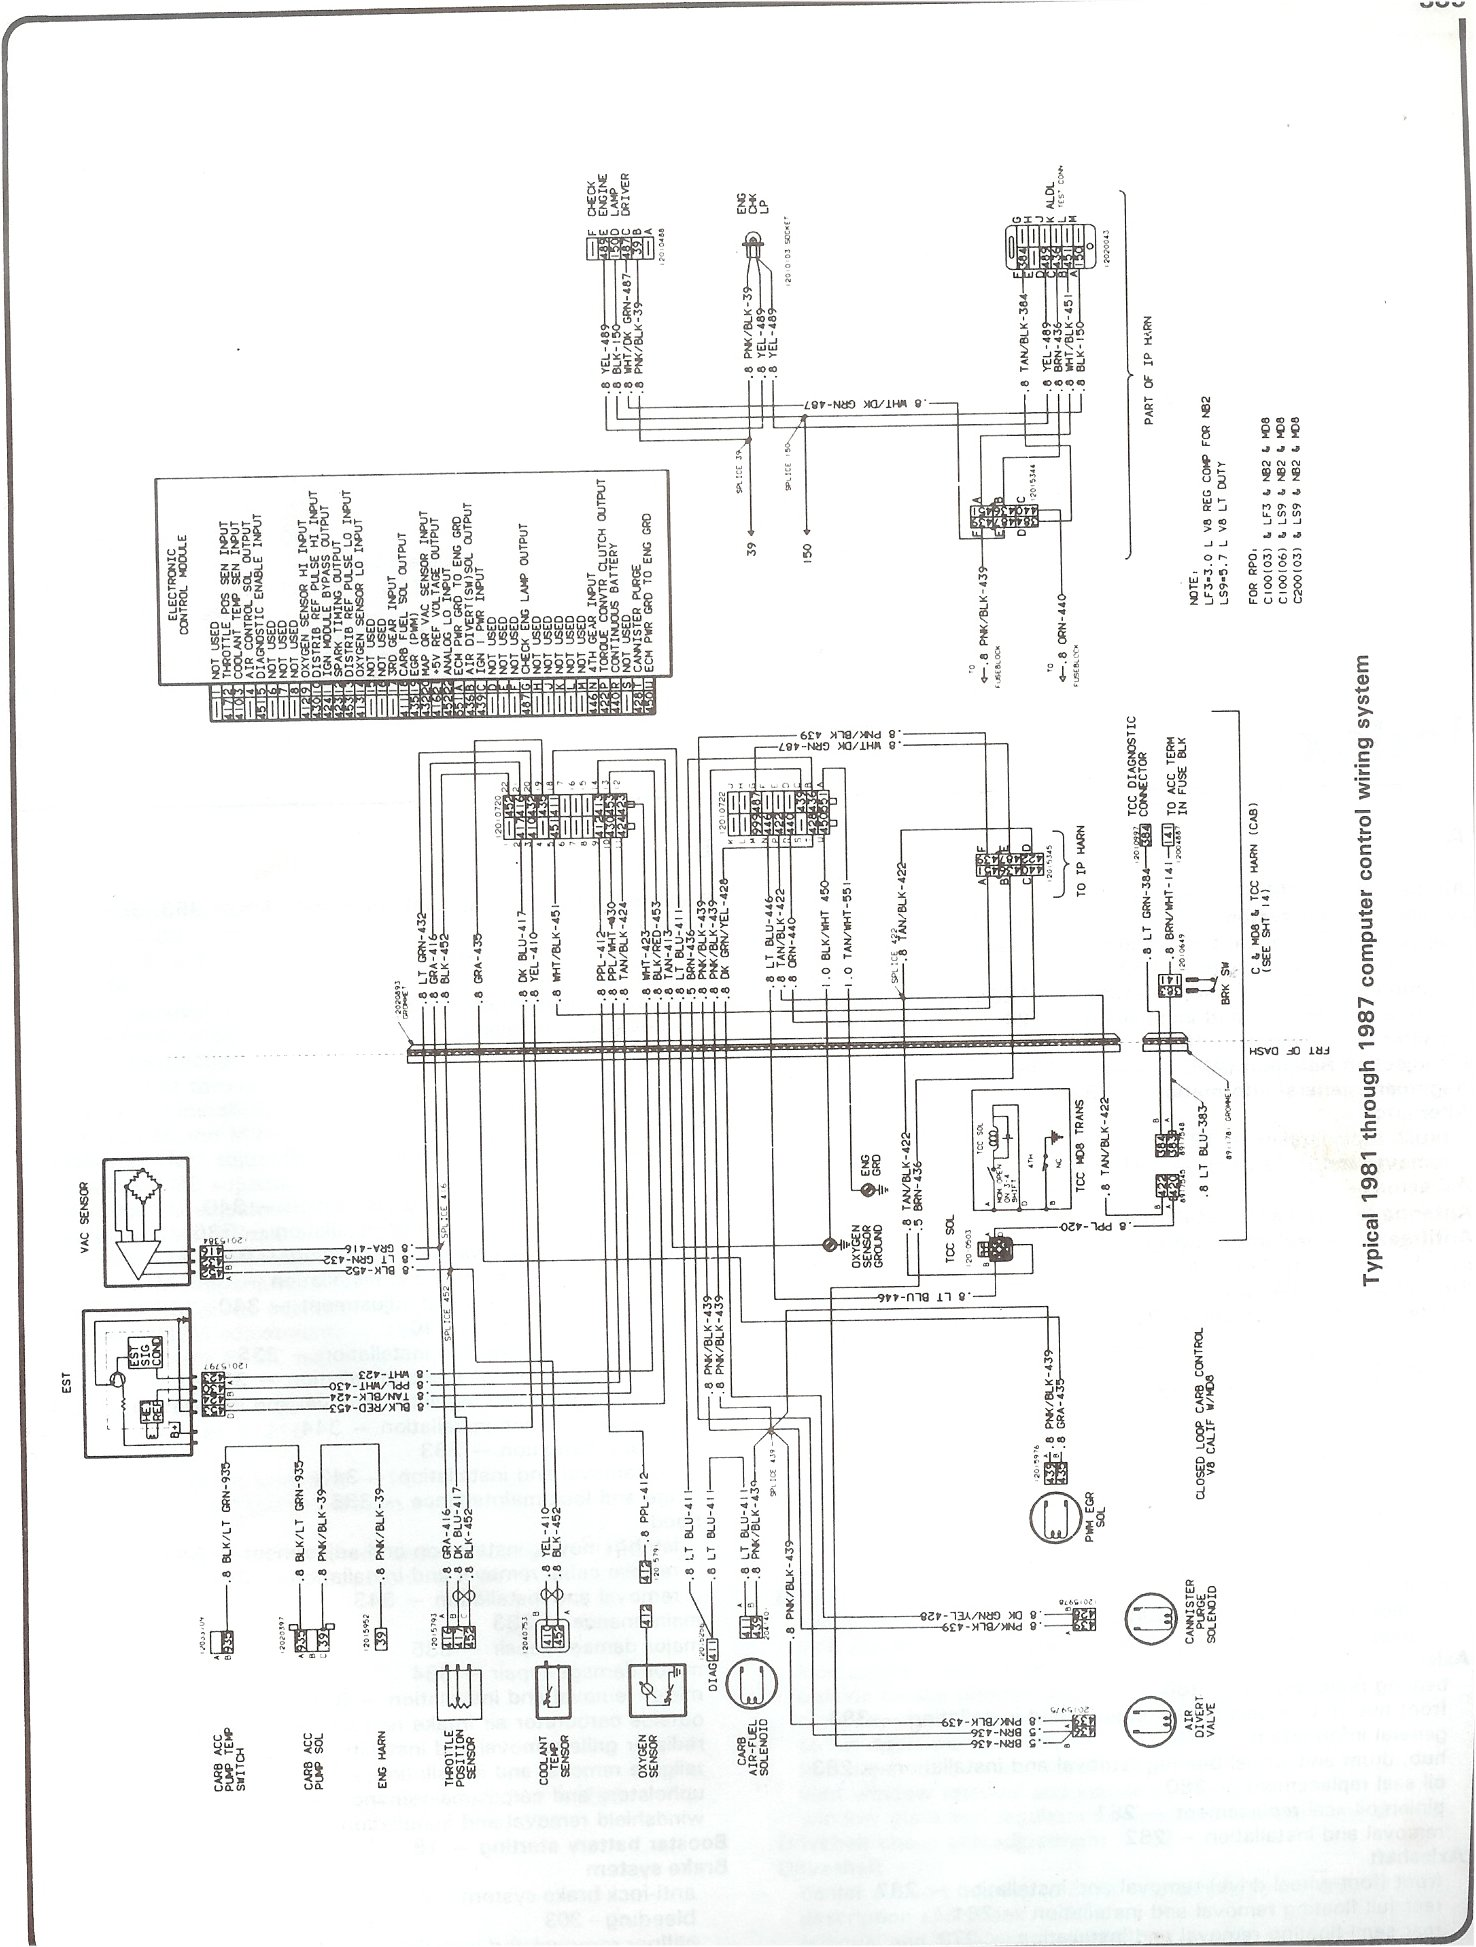 1987 Mazda Wiring Hot Great Installation Of Diagram 88 323 Schematic Data Rh 9 American Football Ausruestung De 1988 1985